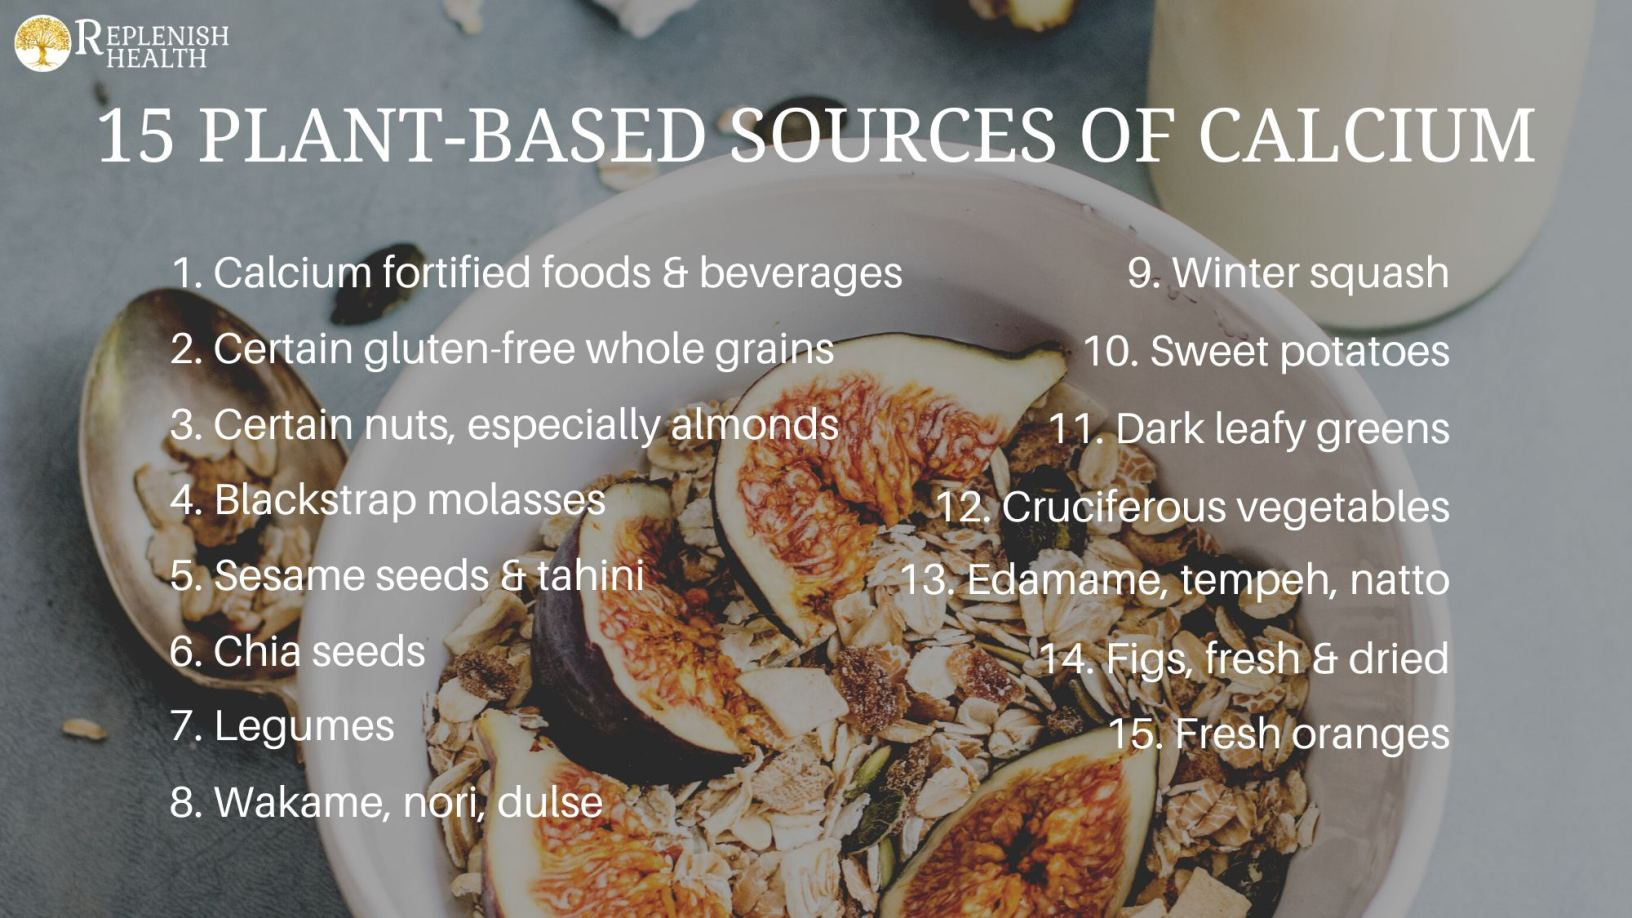 An image of 15 plant-based sources of calcium.